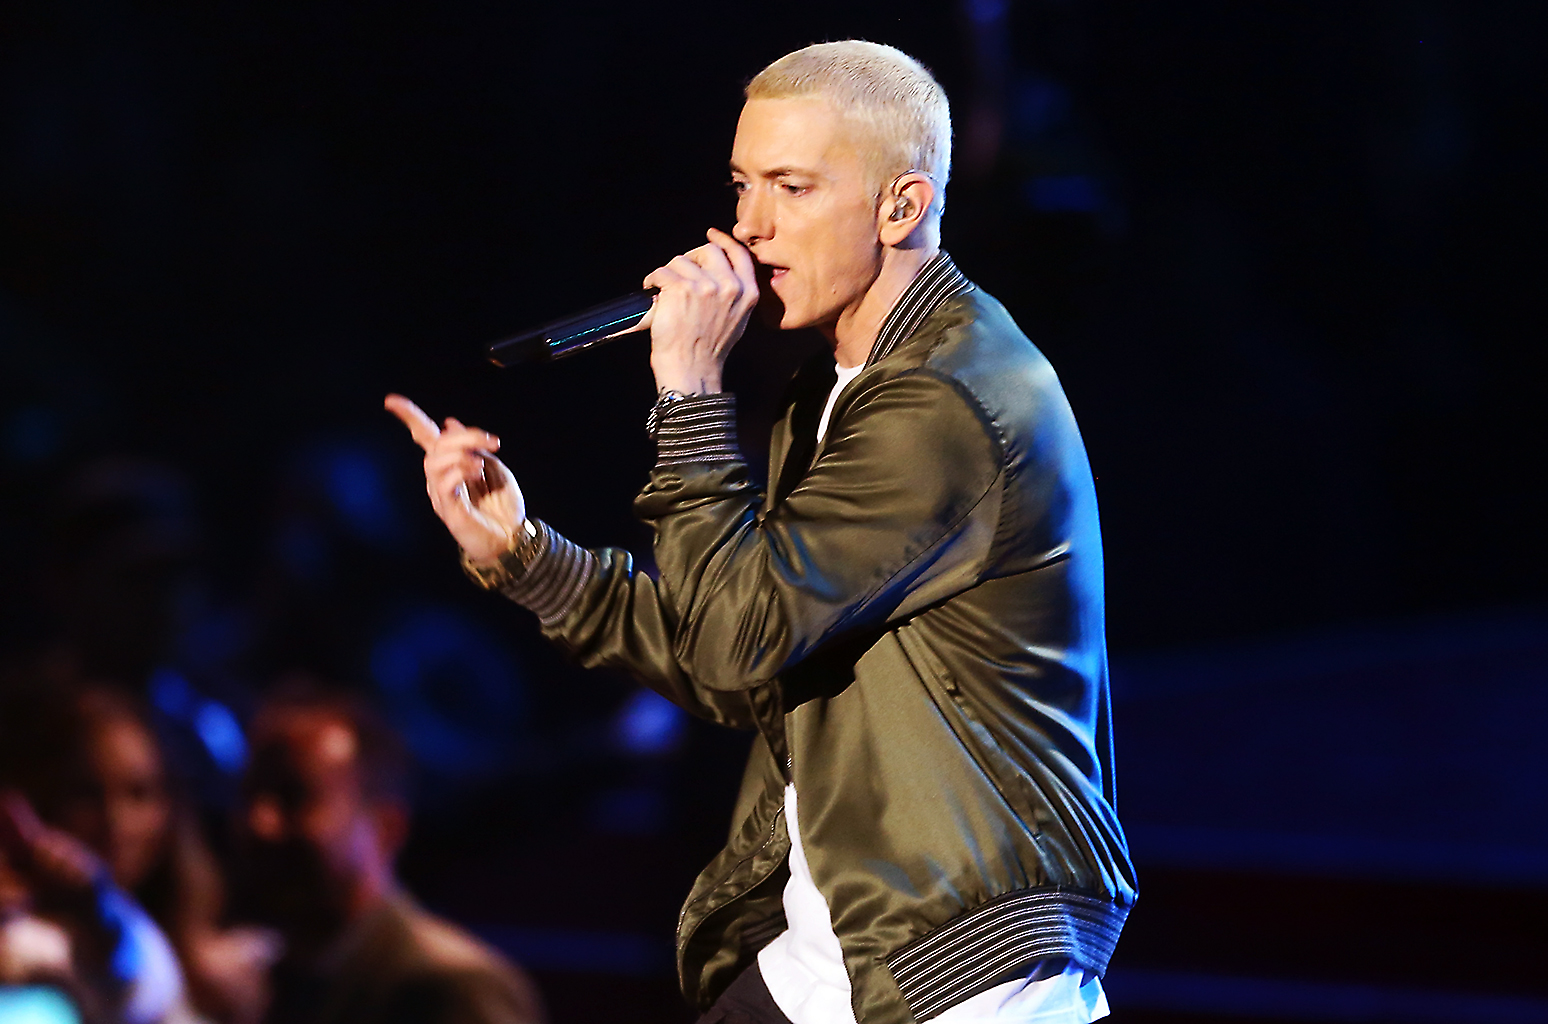 eminem perform on mtv awards 2014 billboard 1548